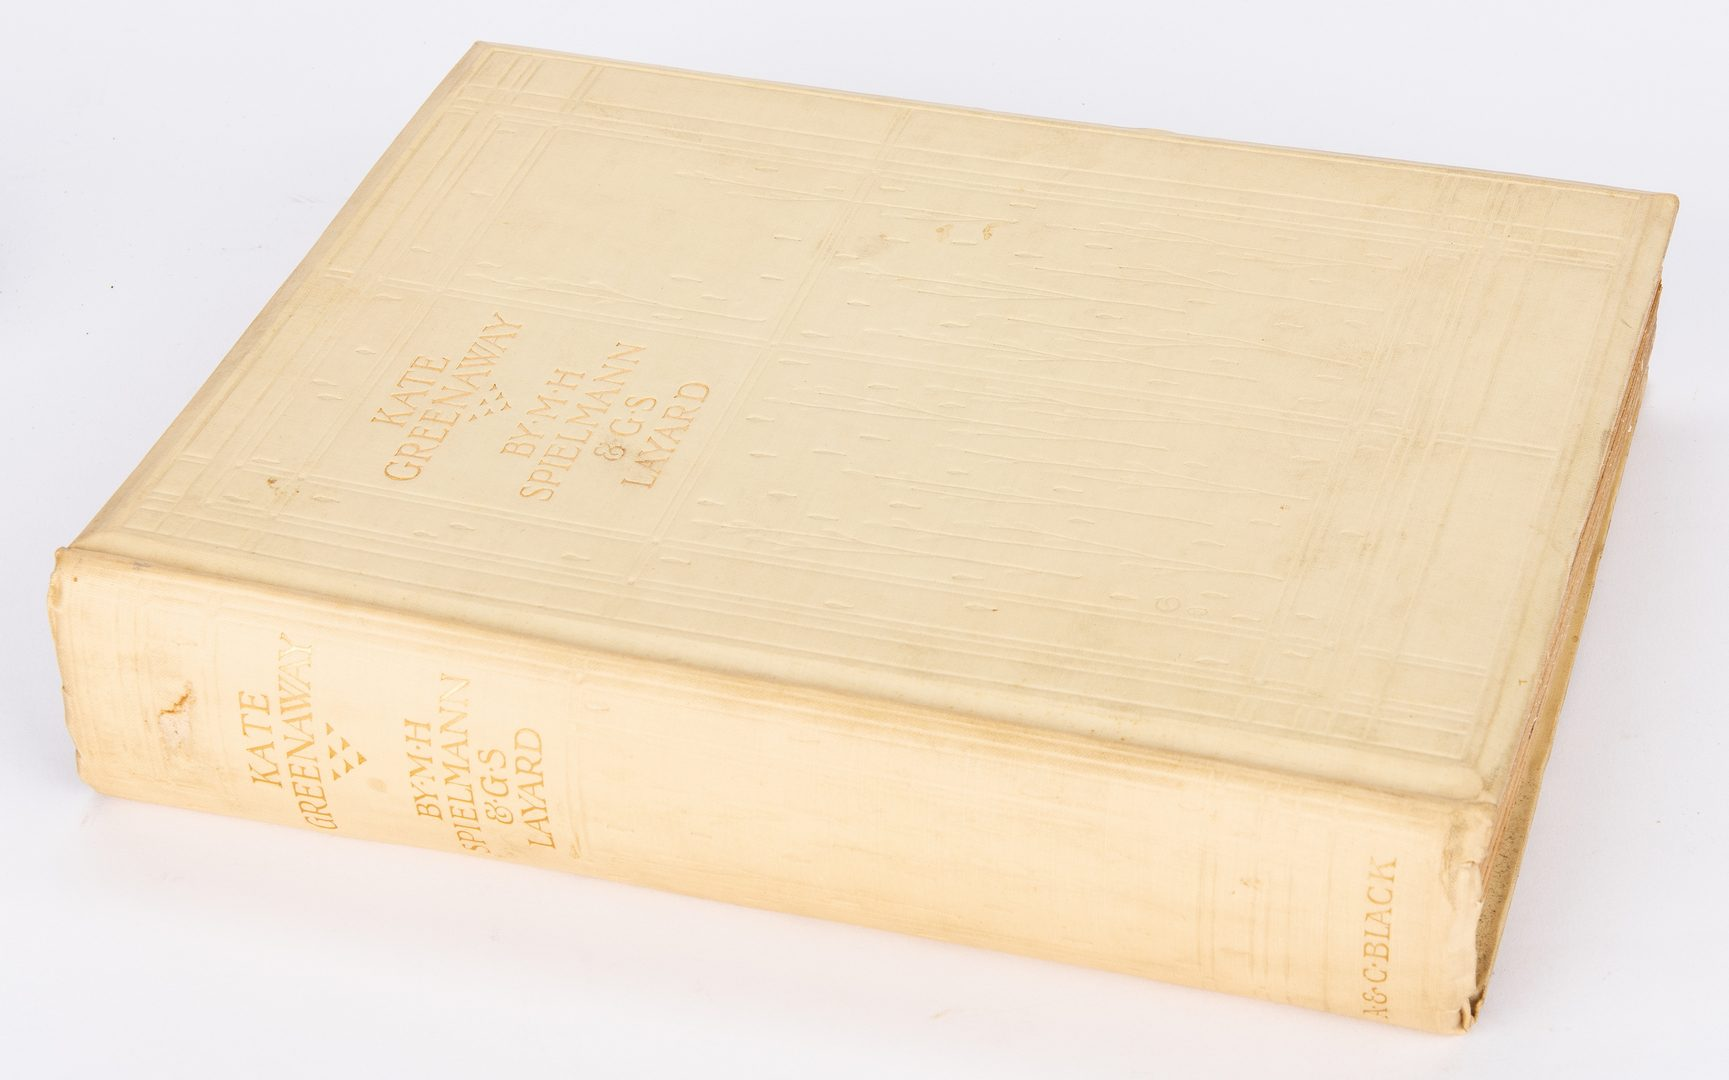 Lot 809: Kate Greenaway, Signed De Luxe Edition, 1905